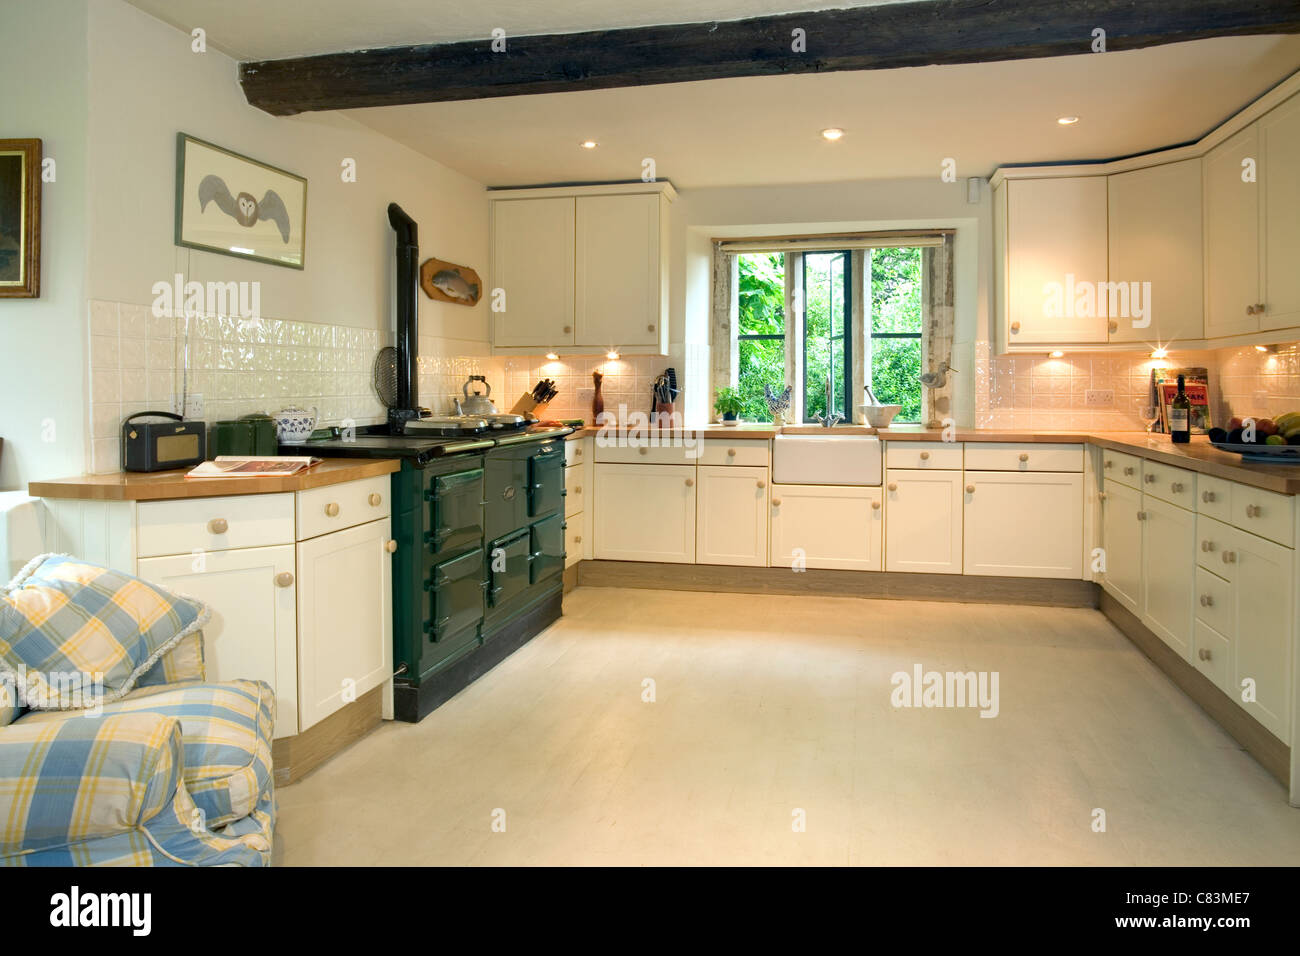 contemporary style kitchen with aga cooker and butlers sink    stock image kitchen aga cooker stock photos  u0026 kitchen aga cooker stock images      rh   alamy com